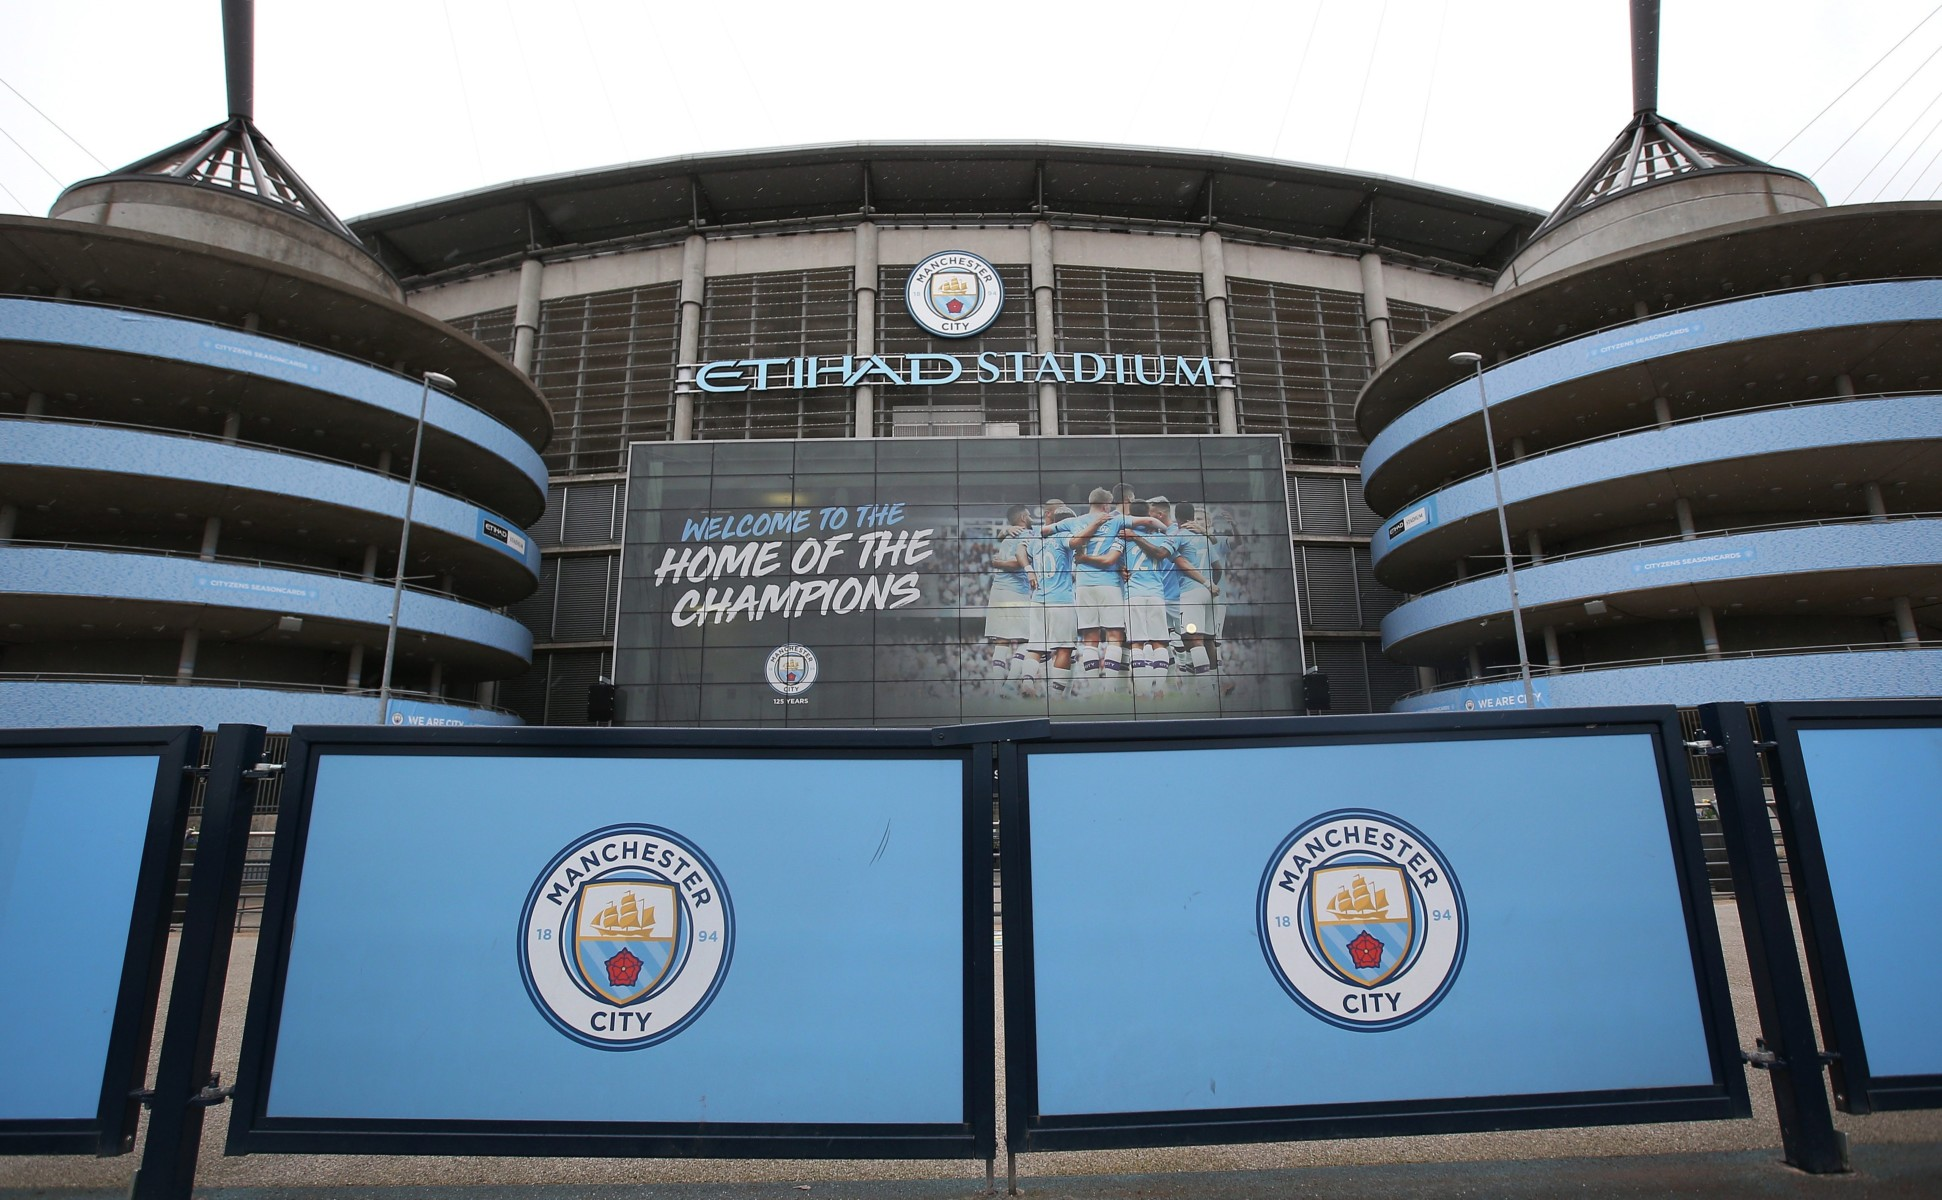 The Etihad stadium will become the latest venue to change use to help fight the coronavirus pandemic